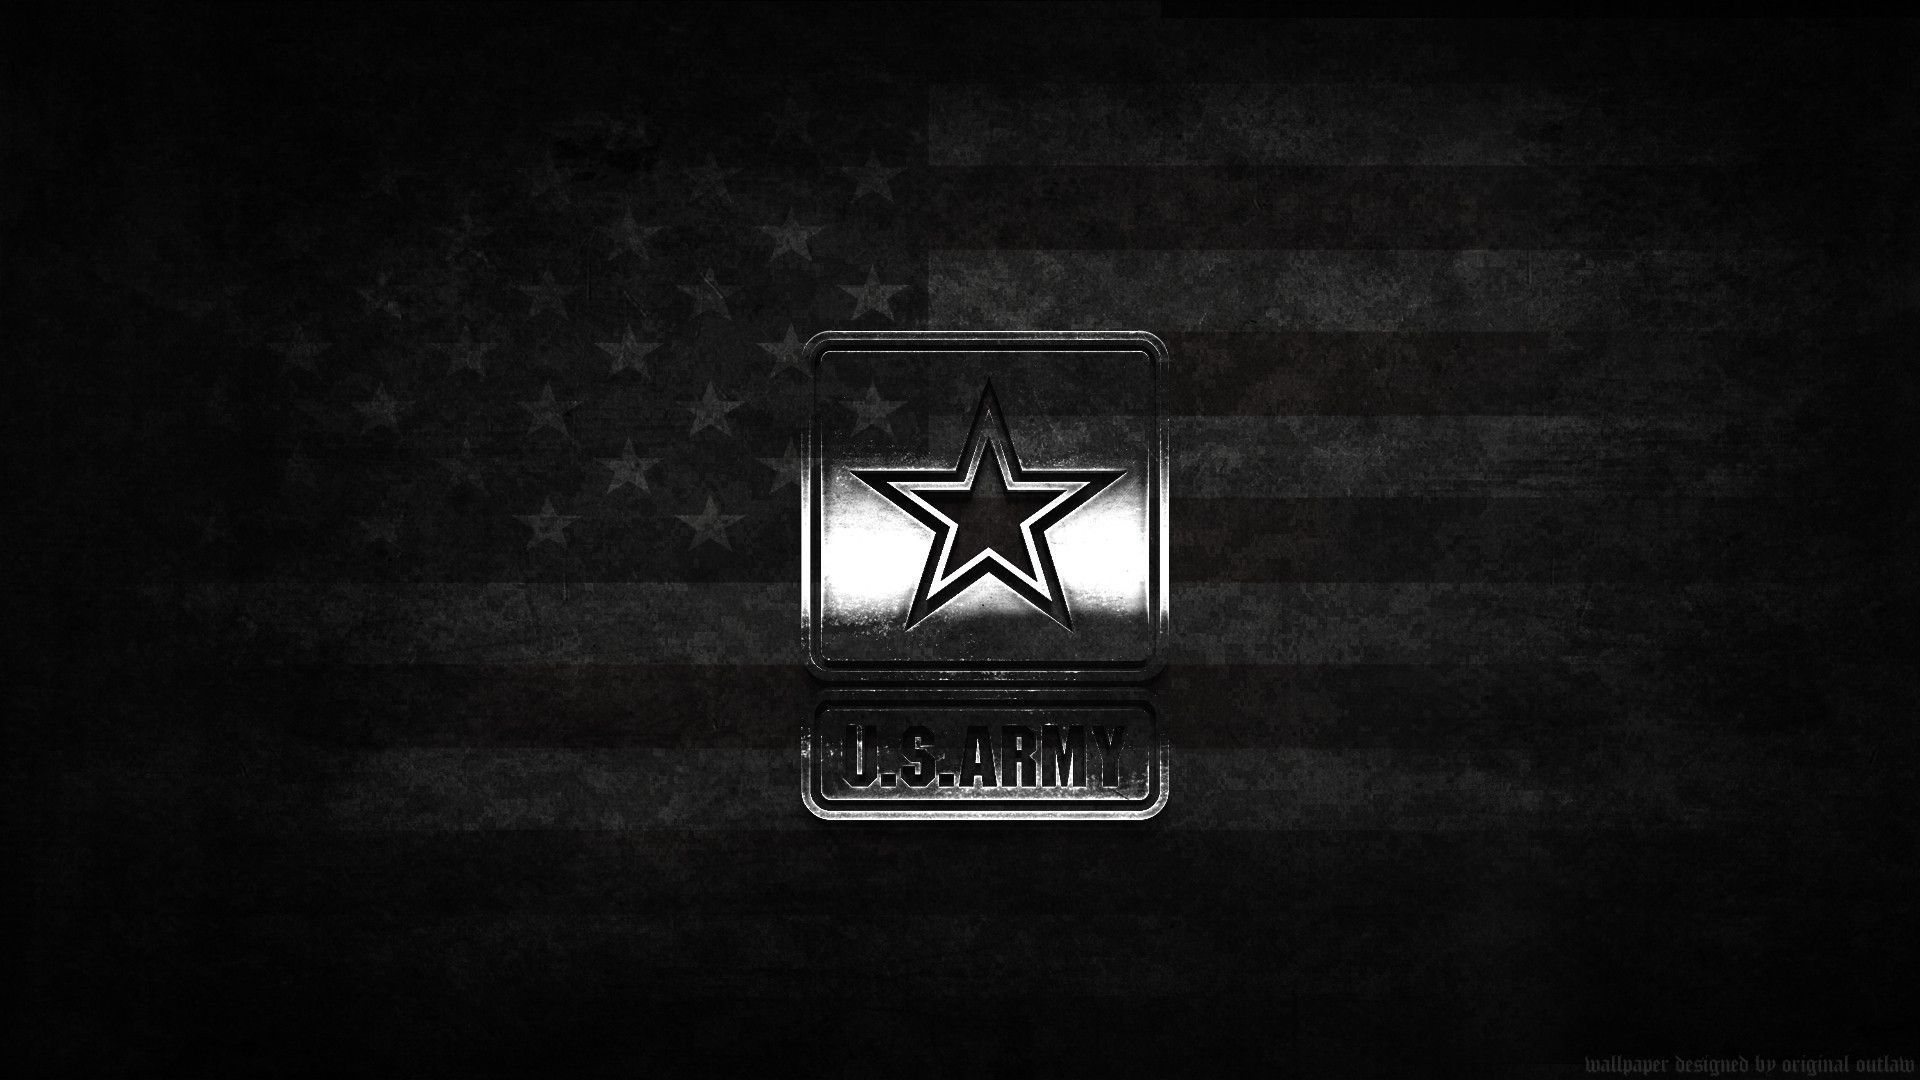 US Army Wallpaper Backgrounds  Army wallpaper 1920x1080